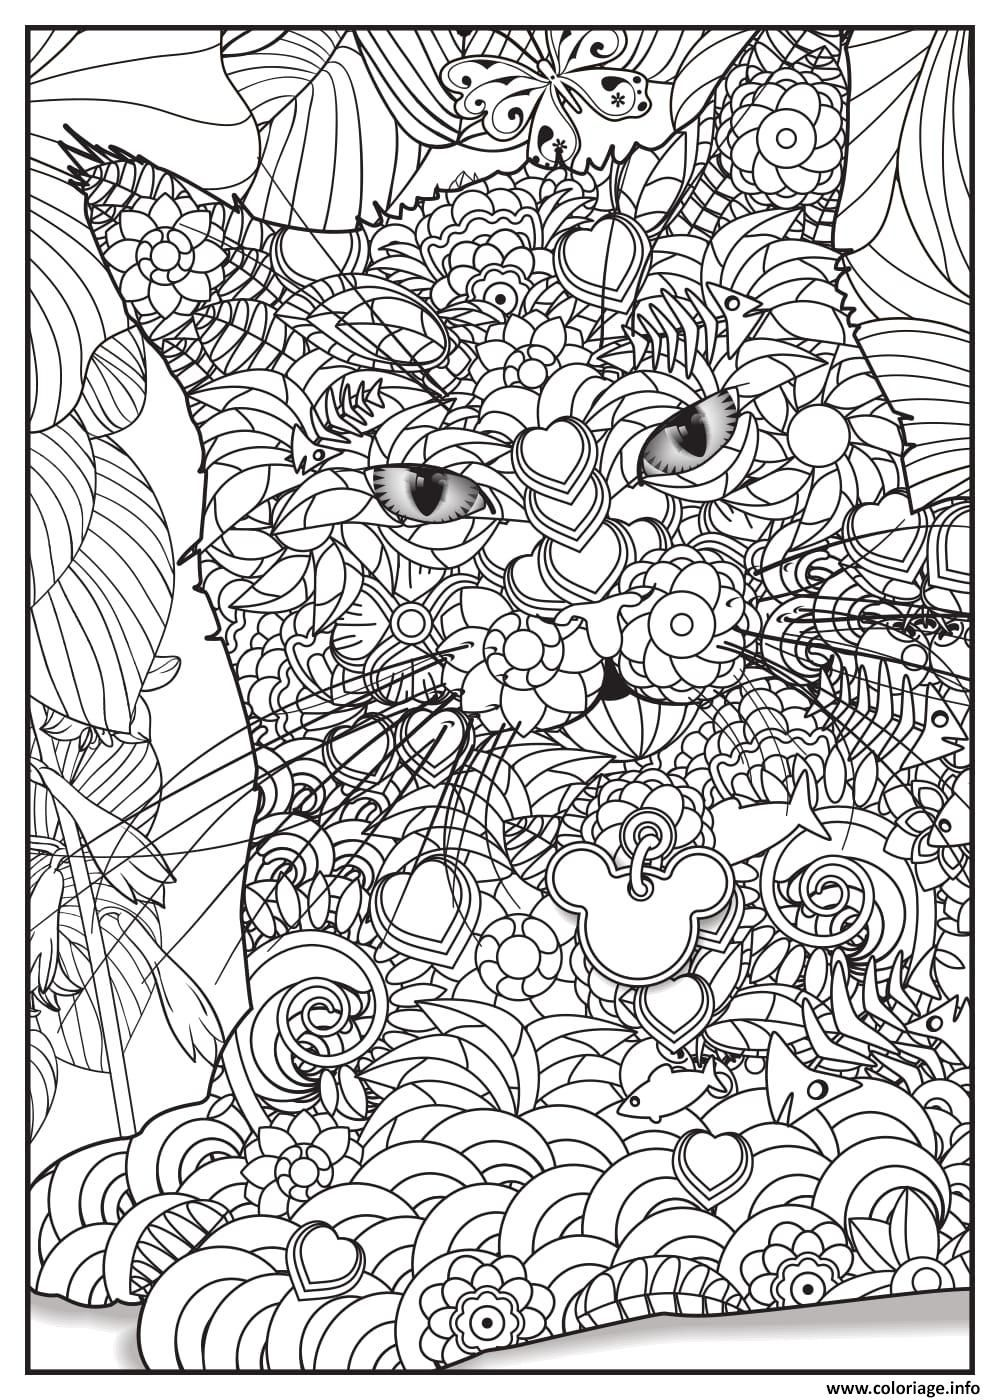 Coloriage Chat Maine Coon.Coloriage Chat Maine Coon Adulte Animaux Dessin A Imprimer